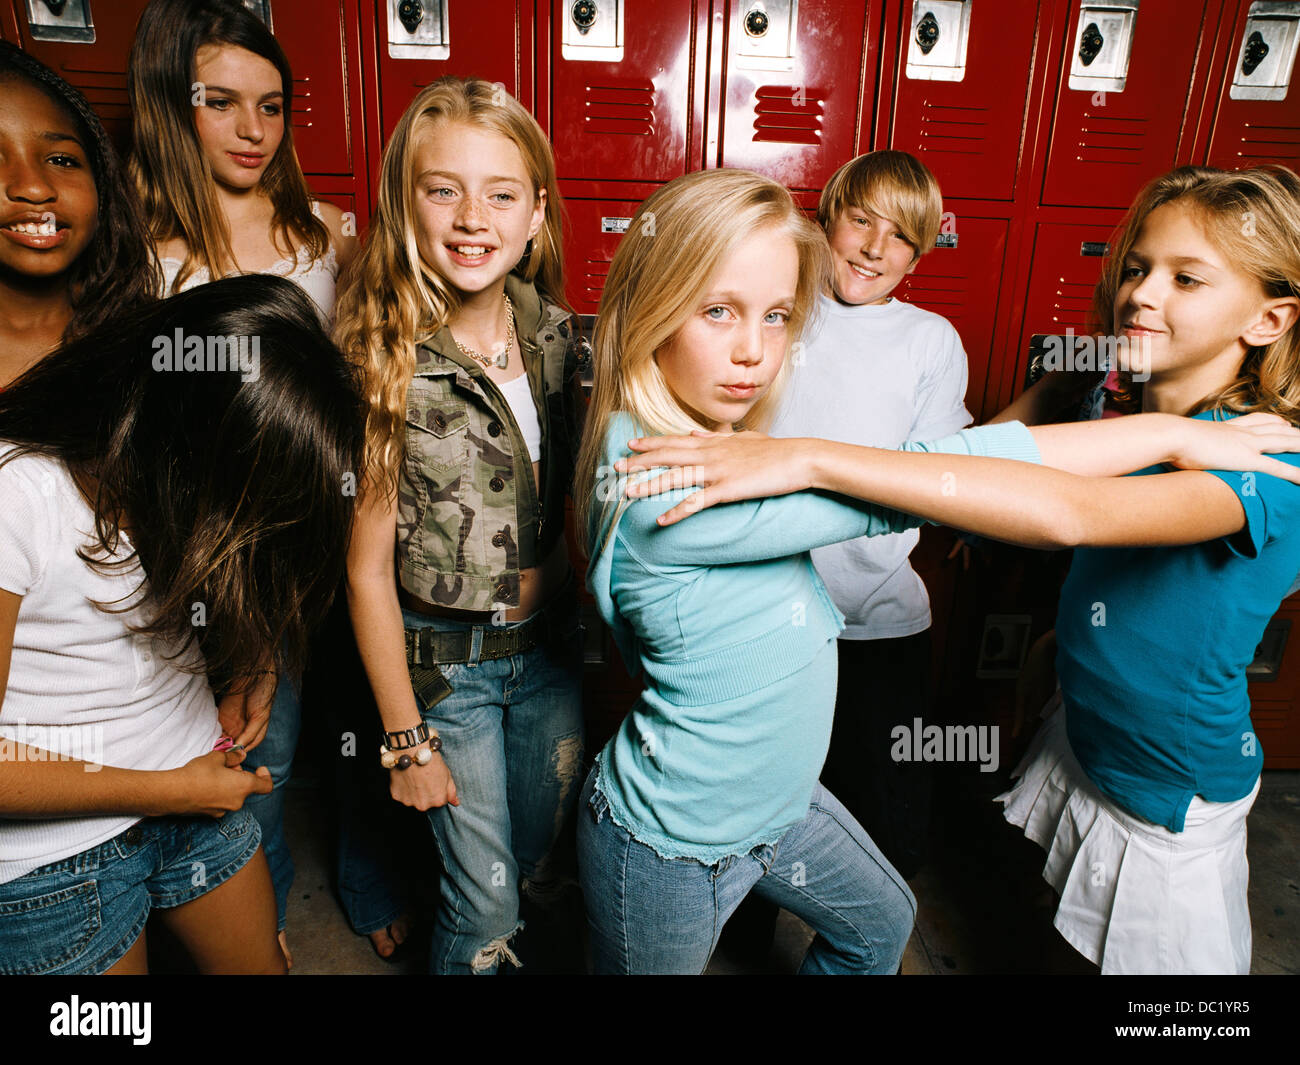 young-teens-in-locker-room